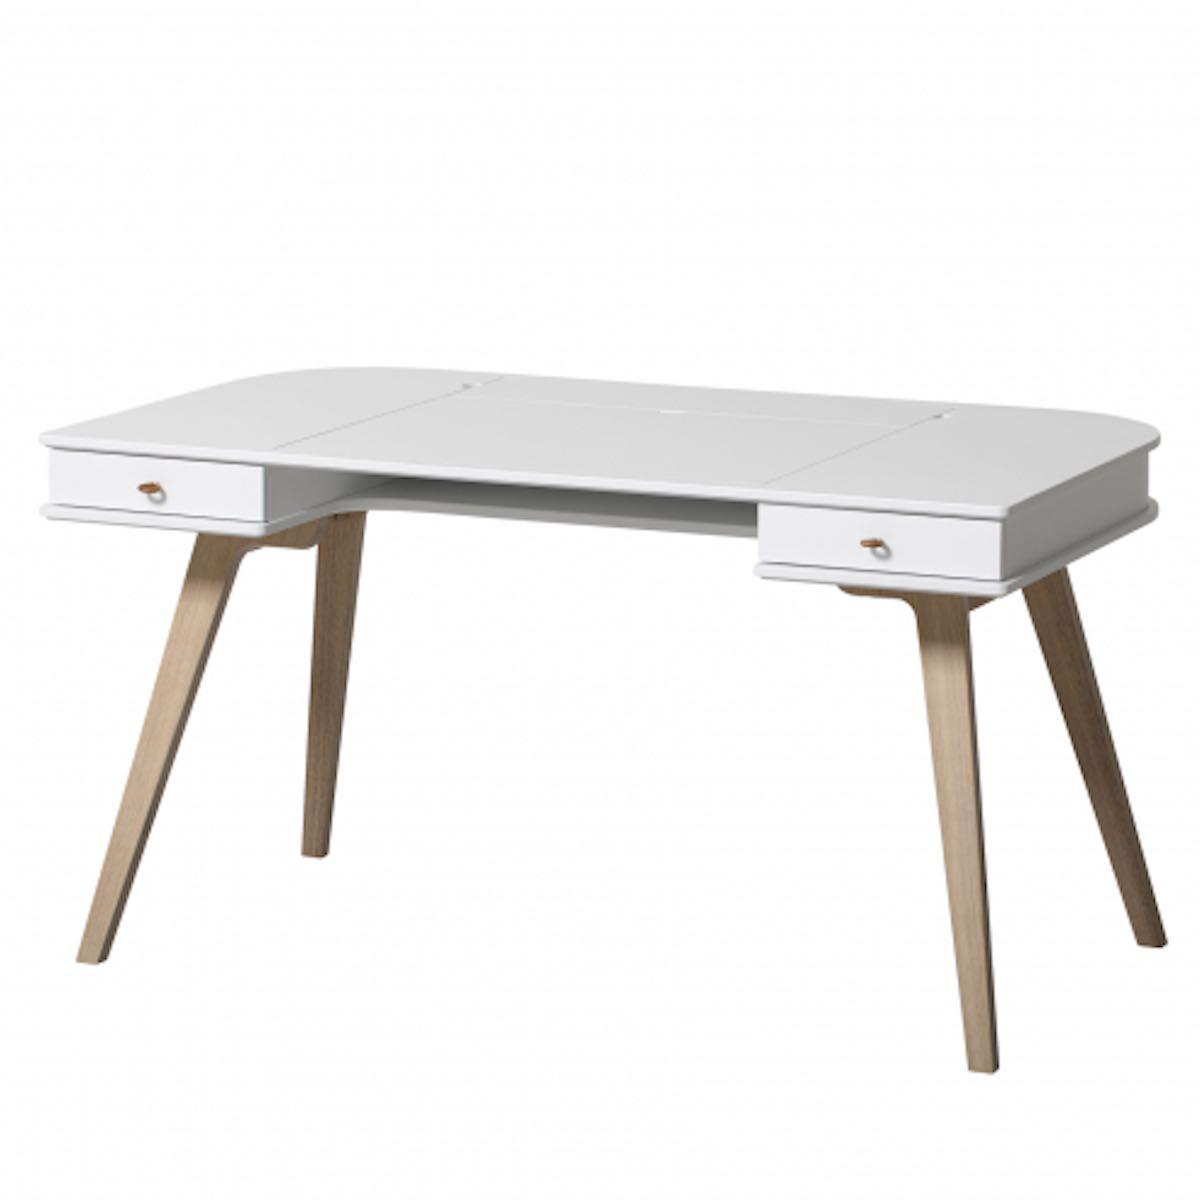 Bureau 66cm WOOD Oliver Furniture blanc-chêne